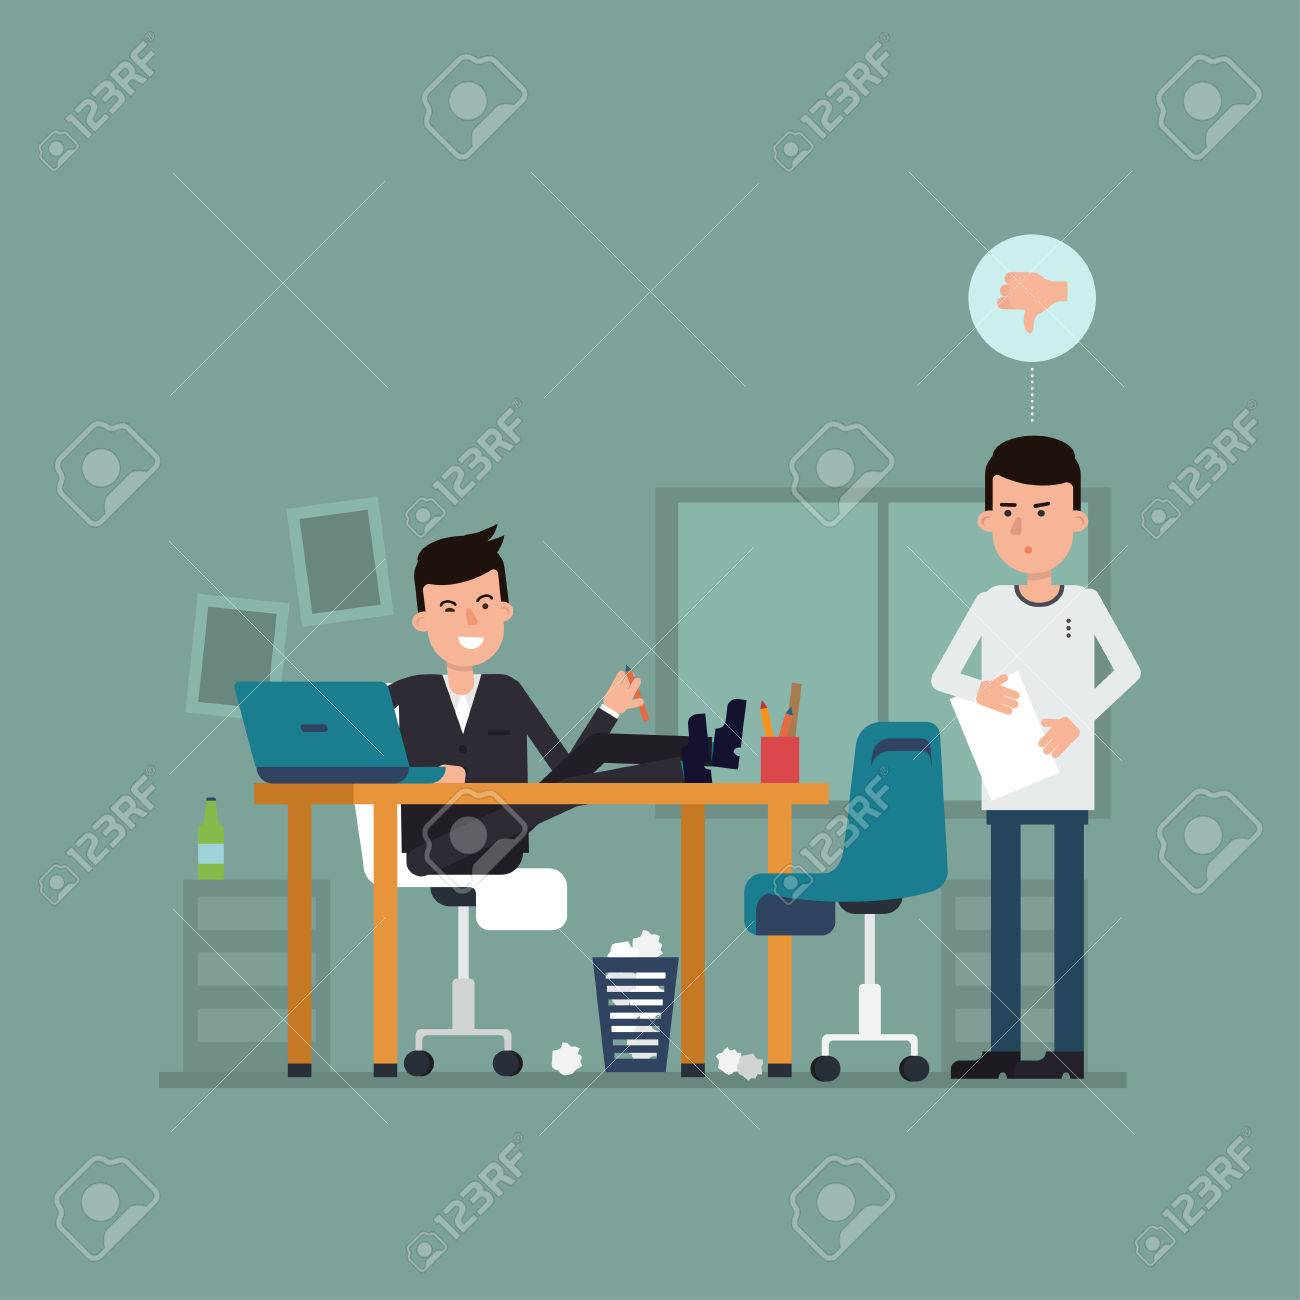 vector flat concept of interview on a bad job illustration illustration surprised jobseeker and irresponsible employer bad impression thumbs down concept working situation recruitment or hiring